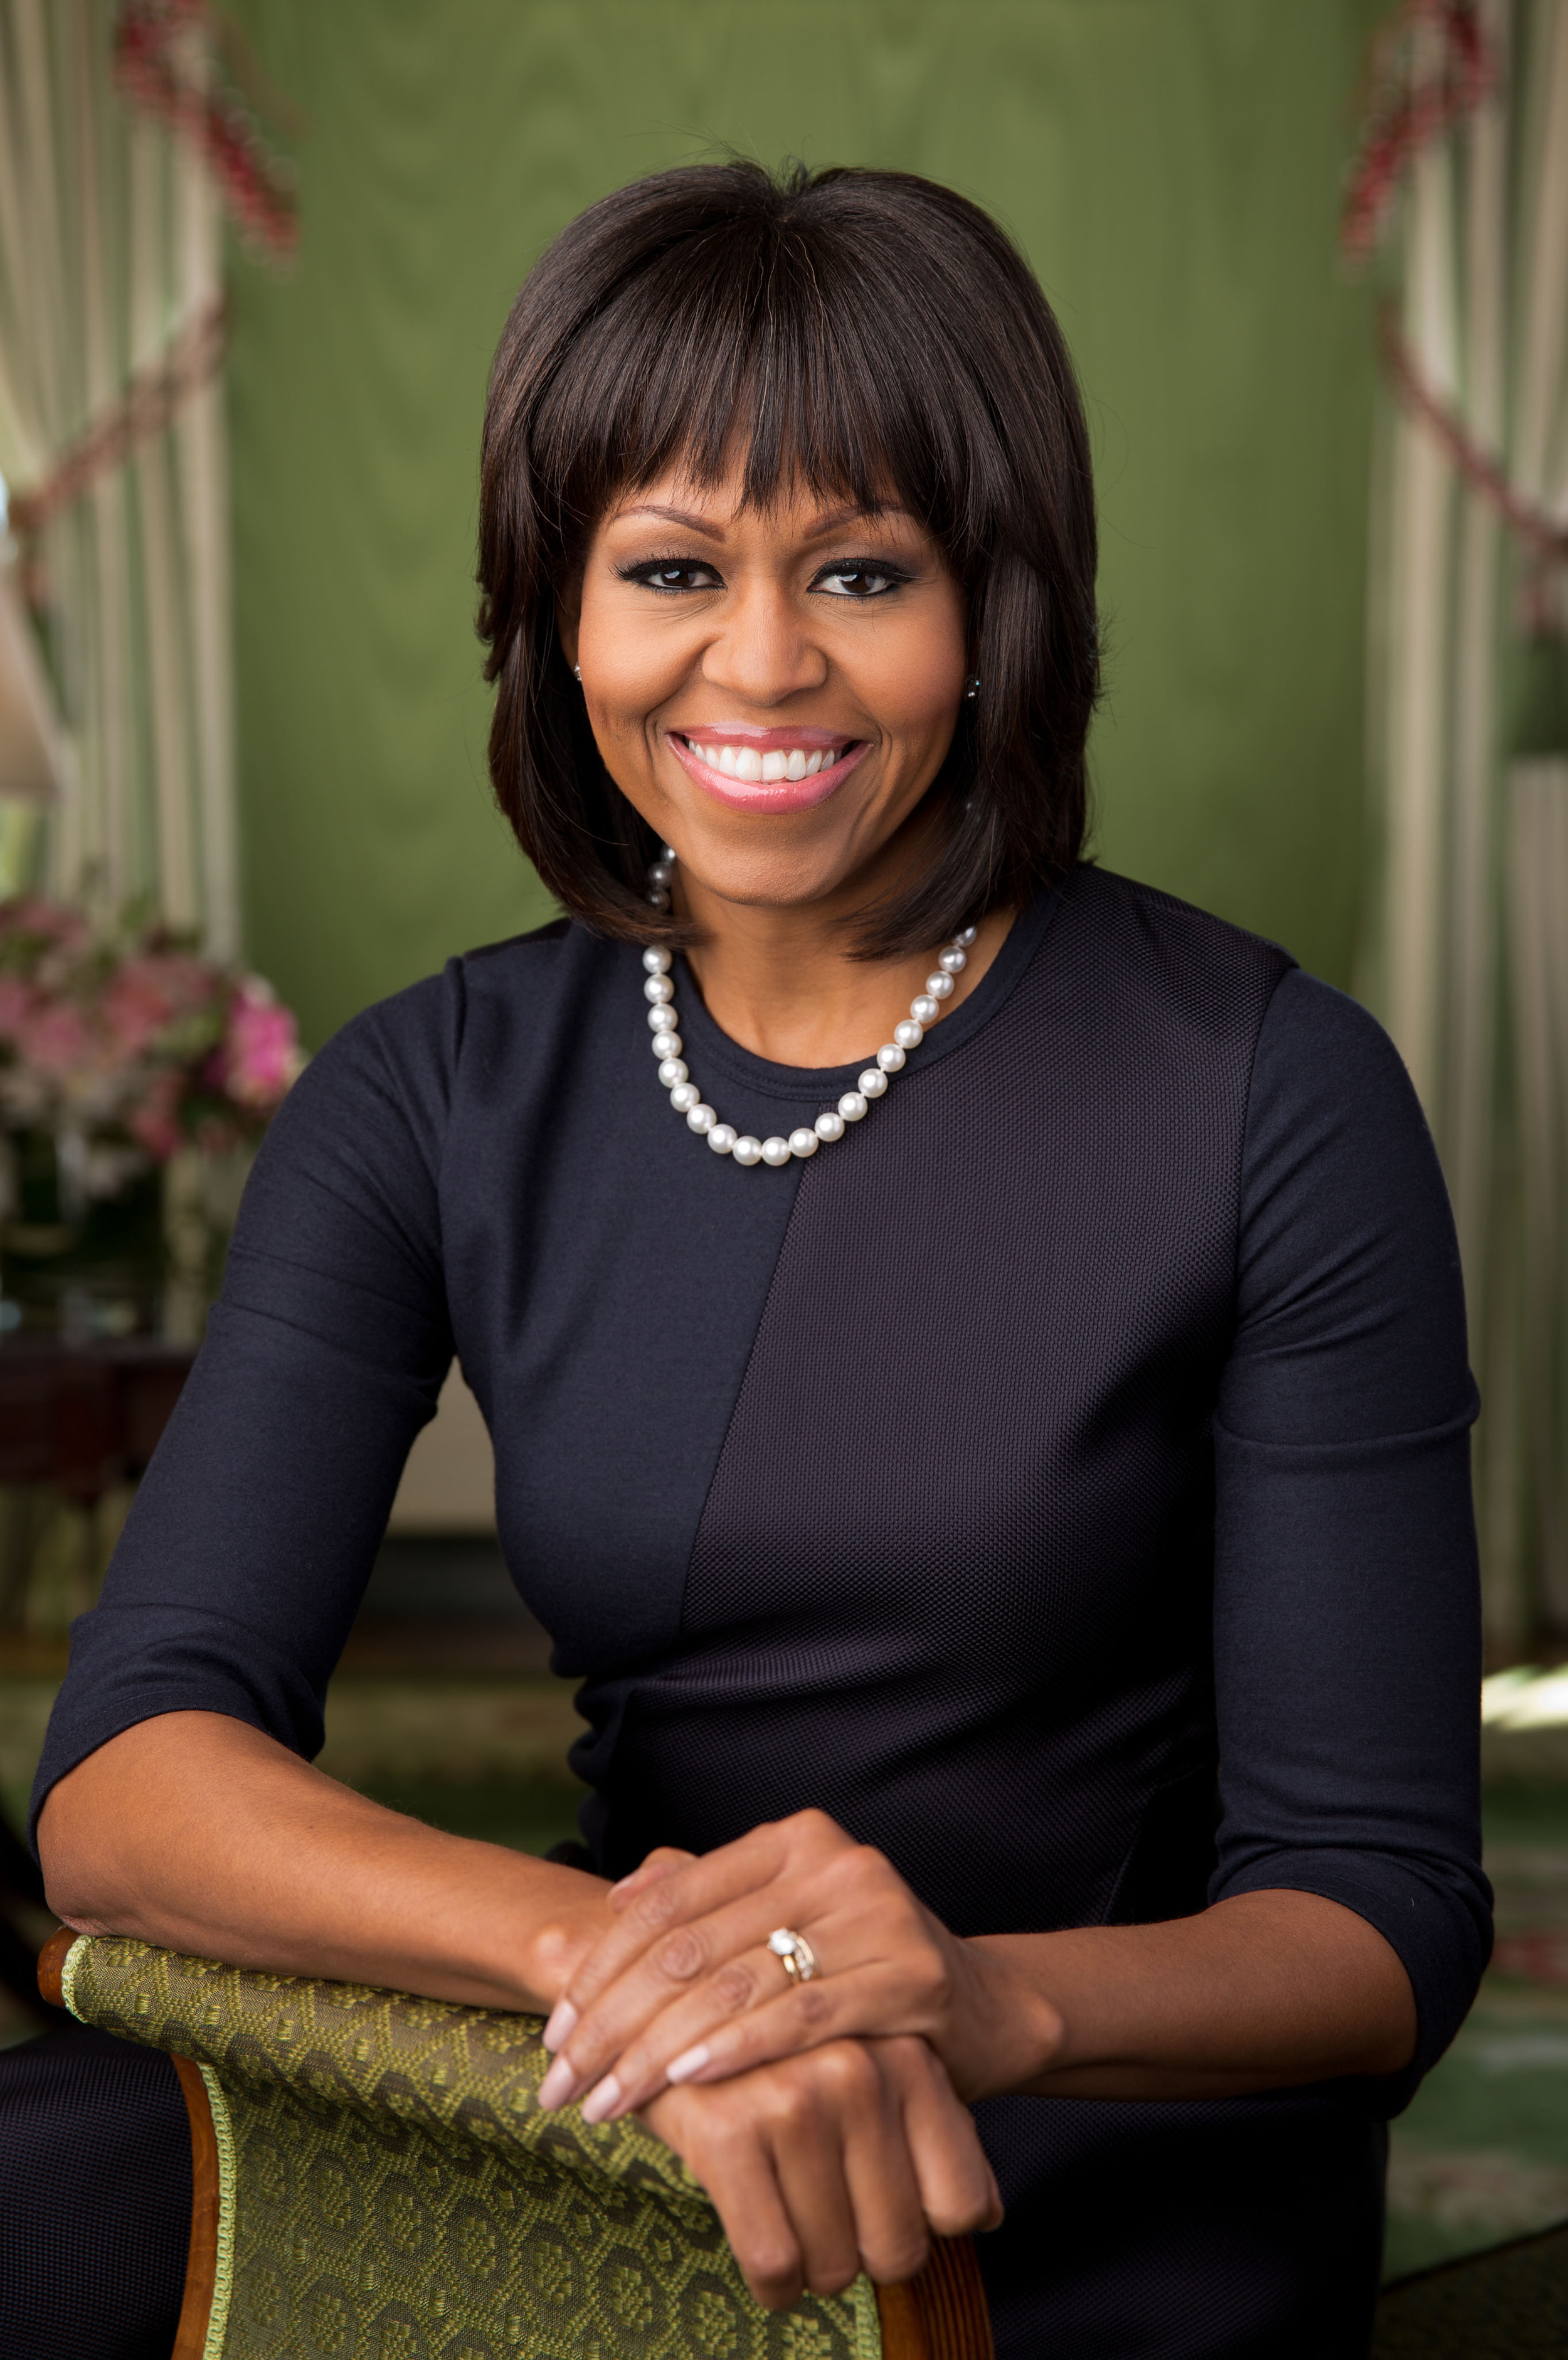 first_lady_portrait_hires.jpg